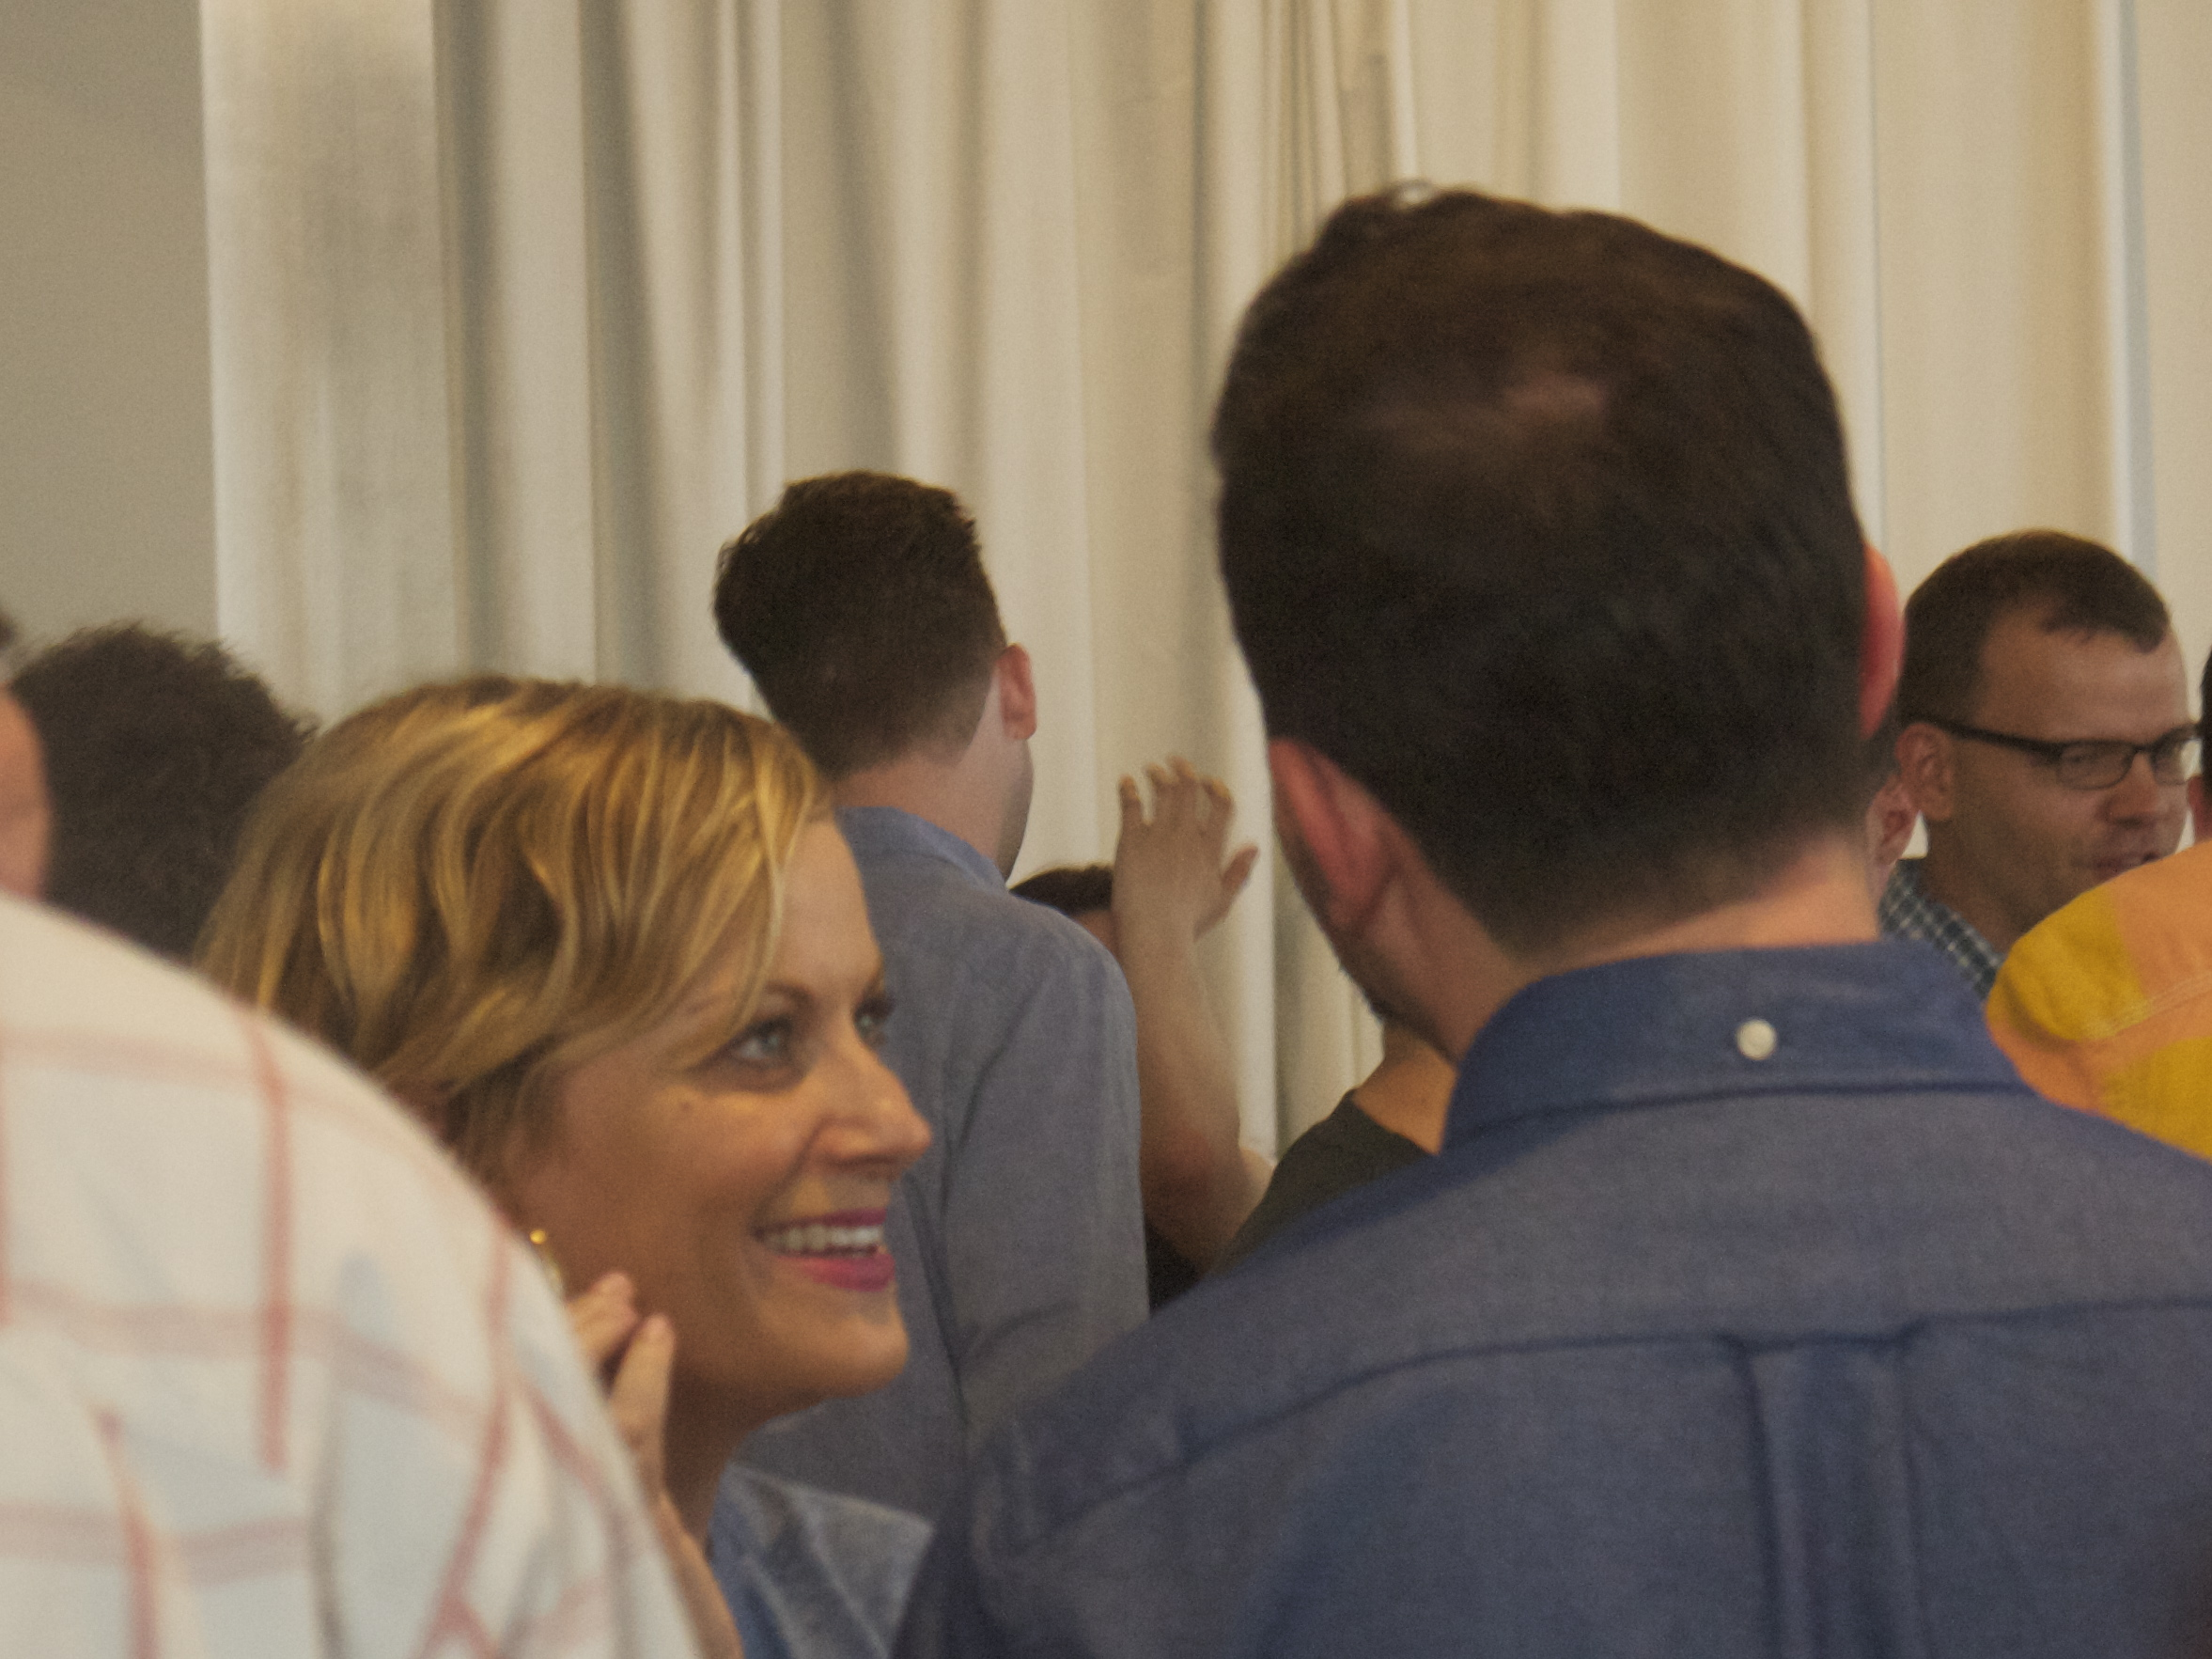 Our best paparazzi shot of new beaus Amy Poehler and Nick Kroll